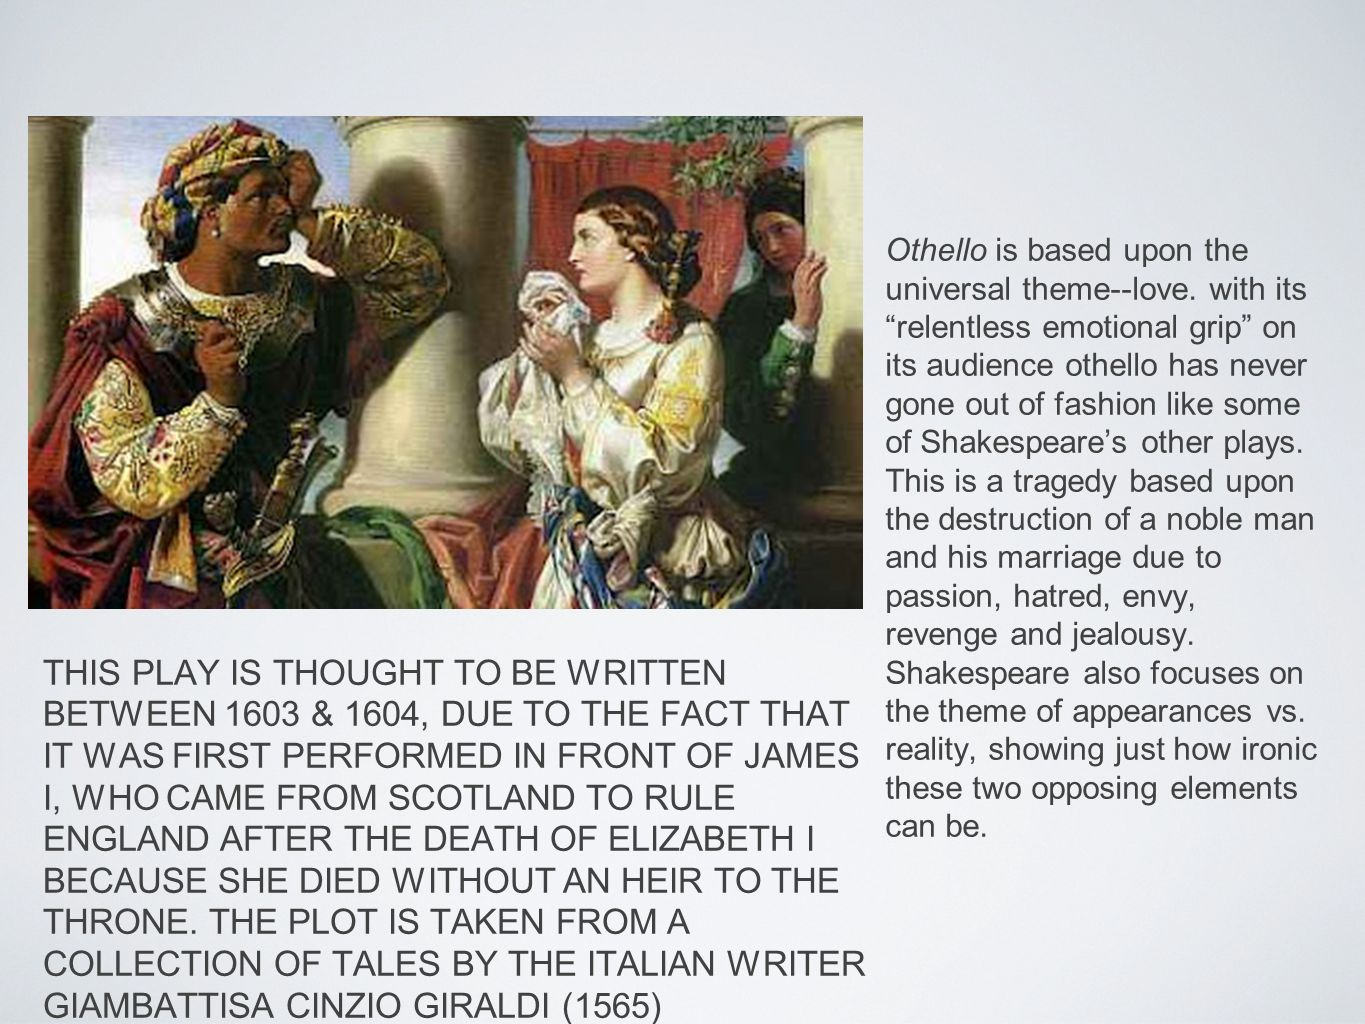 challenges of marriage relationship in othello by william shakespeare With a black othello and a white desdemona being at the center of an   shakespeare may have been in an interracial relationship of his own.